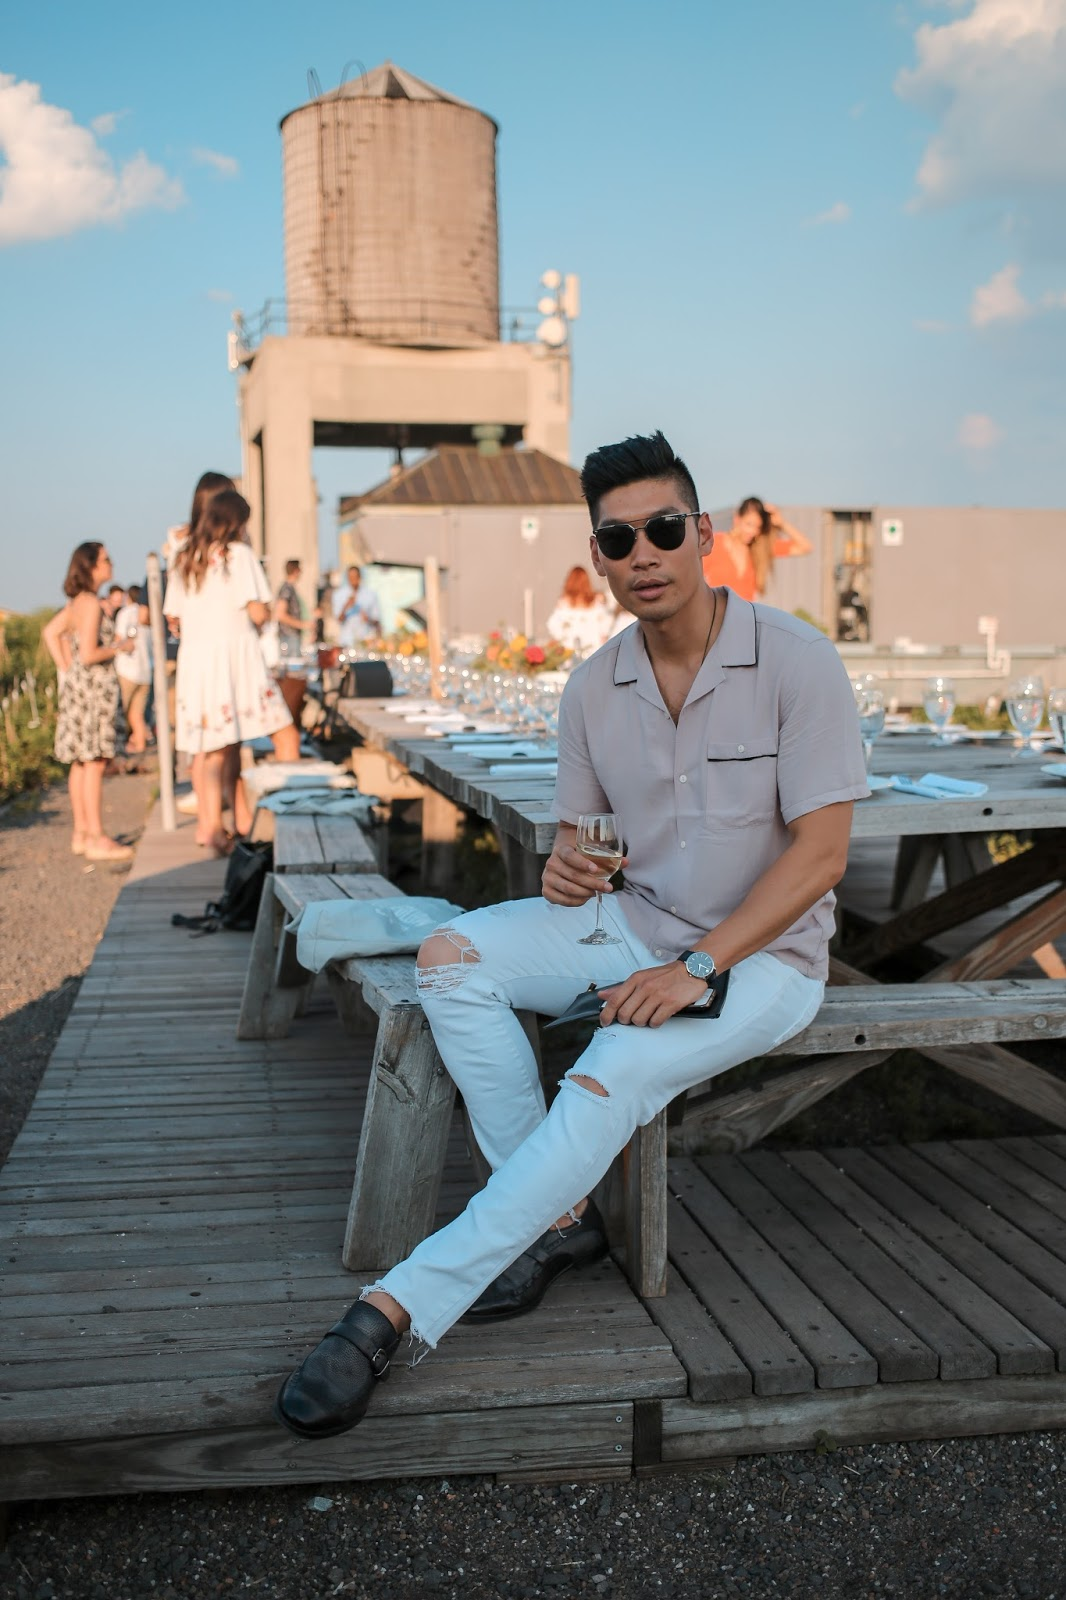 Men's Summer Style at Long Island City Rooftop Garden - Versace, Movado, True Religion, Dolce and Gabbana